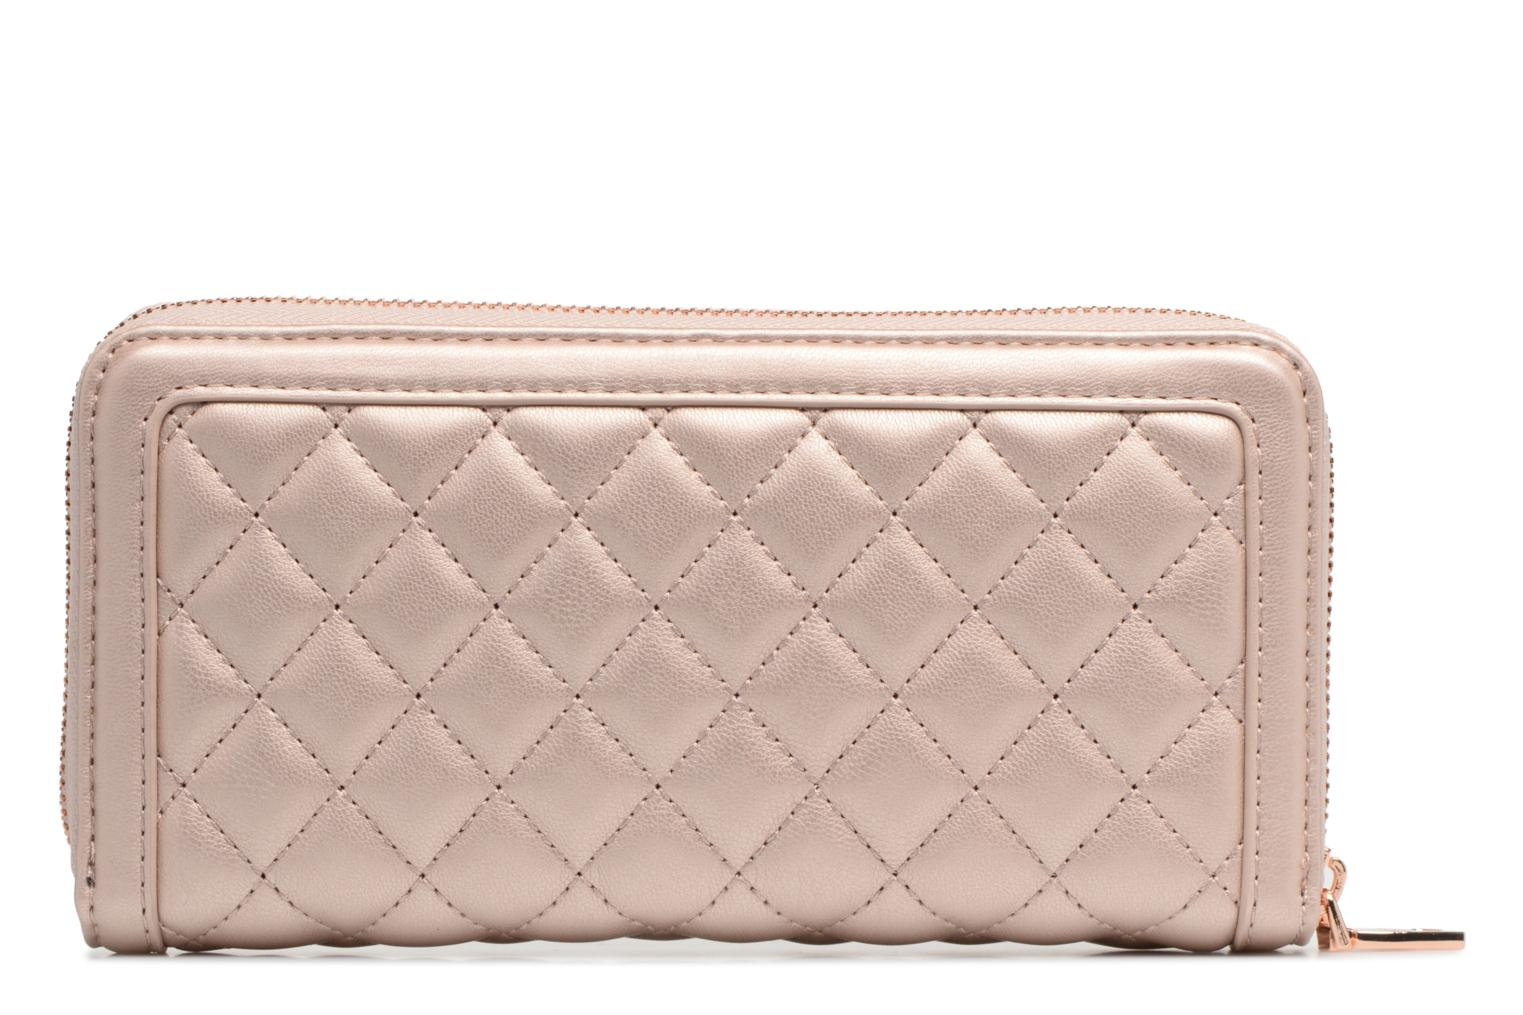 Pelletteria Love Moschino Portefeuille Super Quilted Rosa immagine frontale